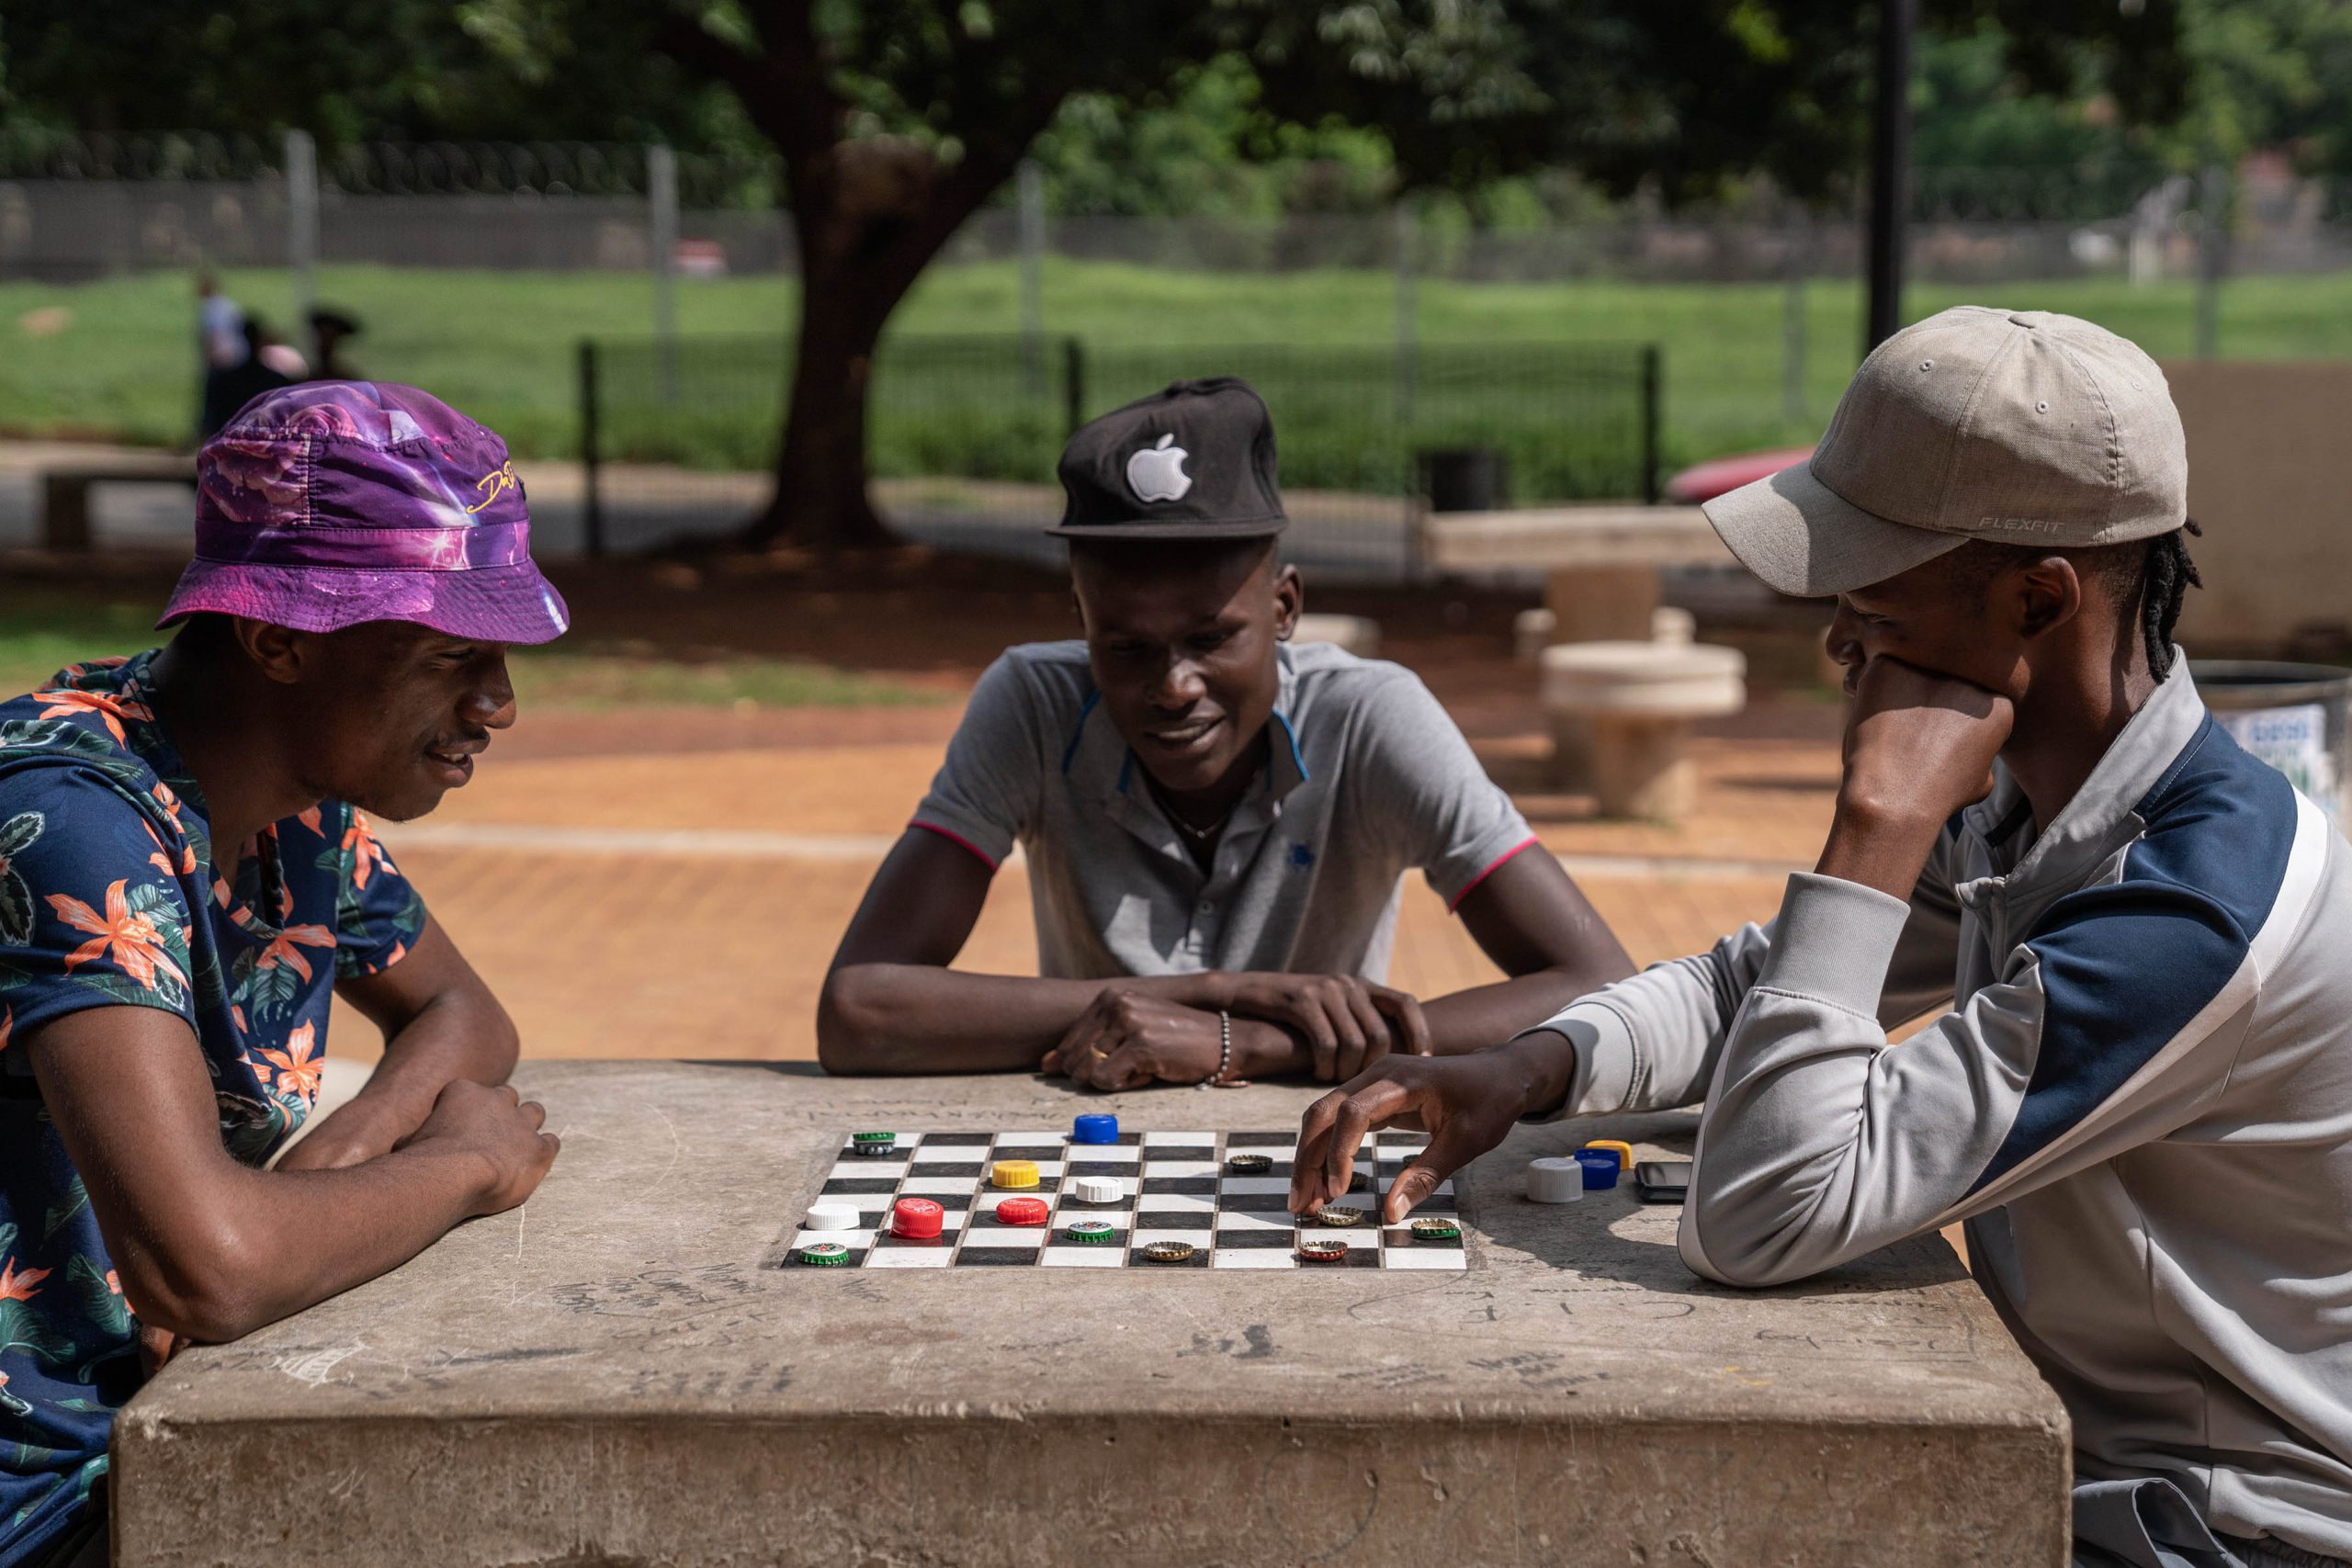 15 January 2020: Three of the park's draught-playing regulars enjoying a game.